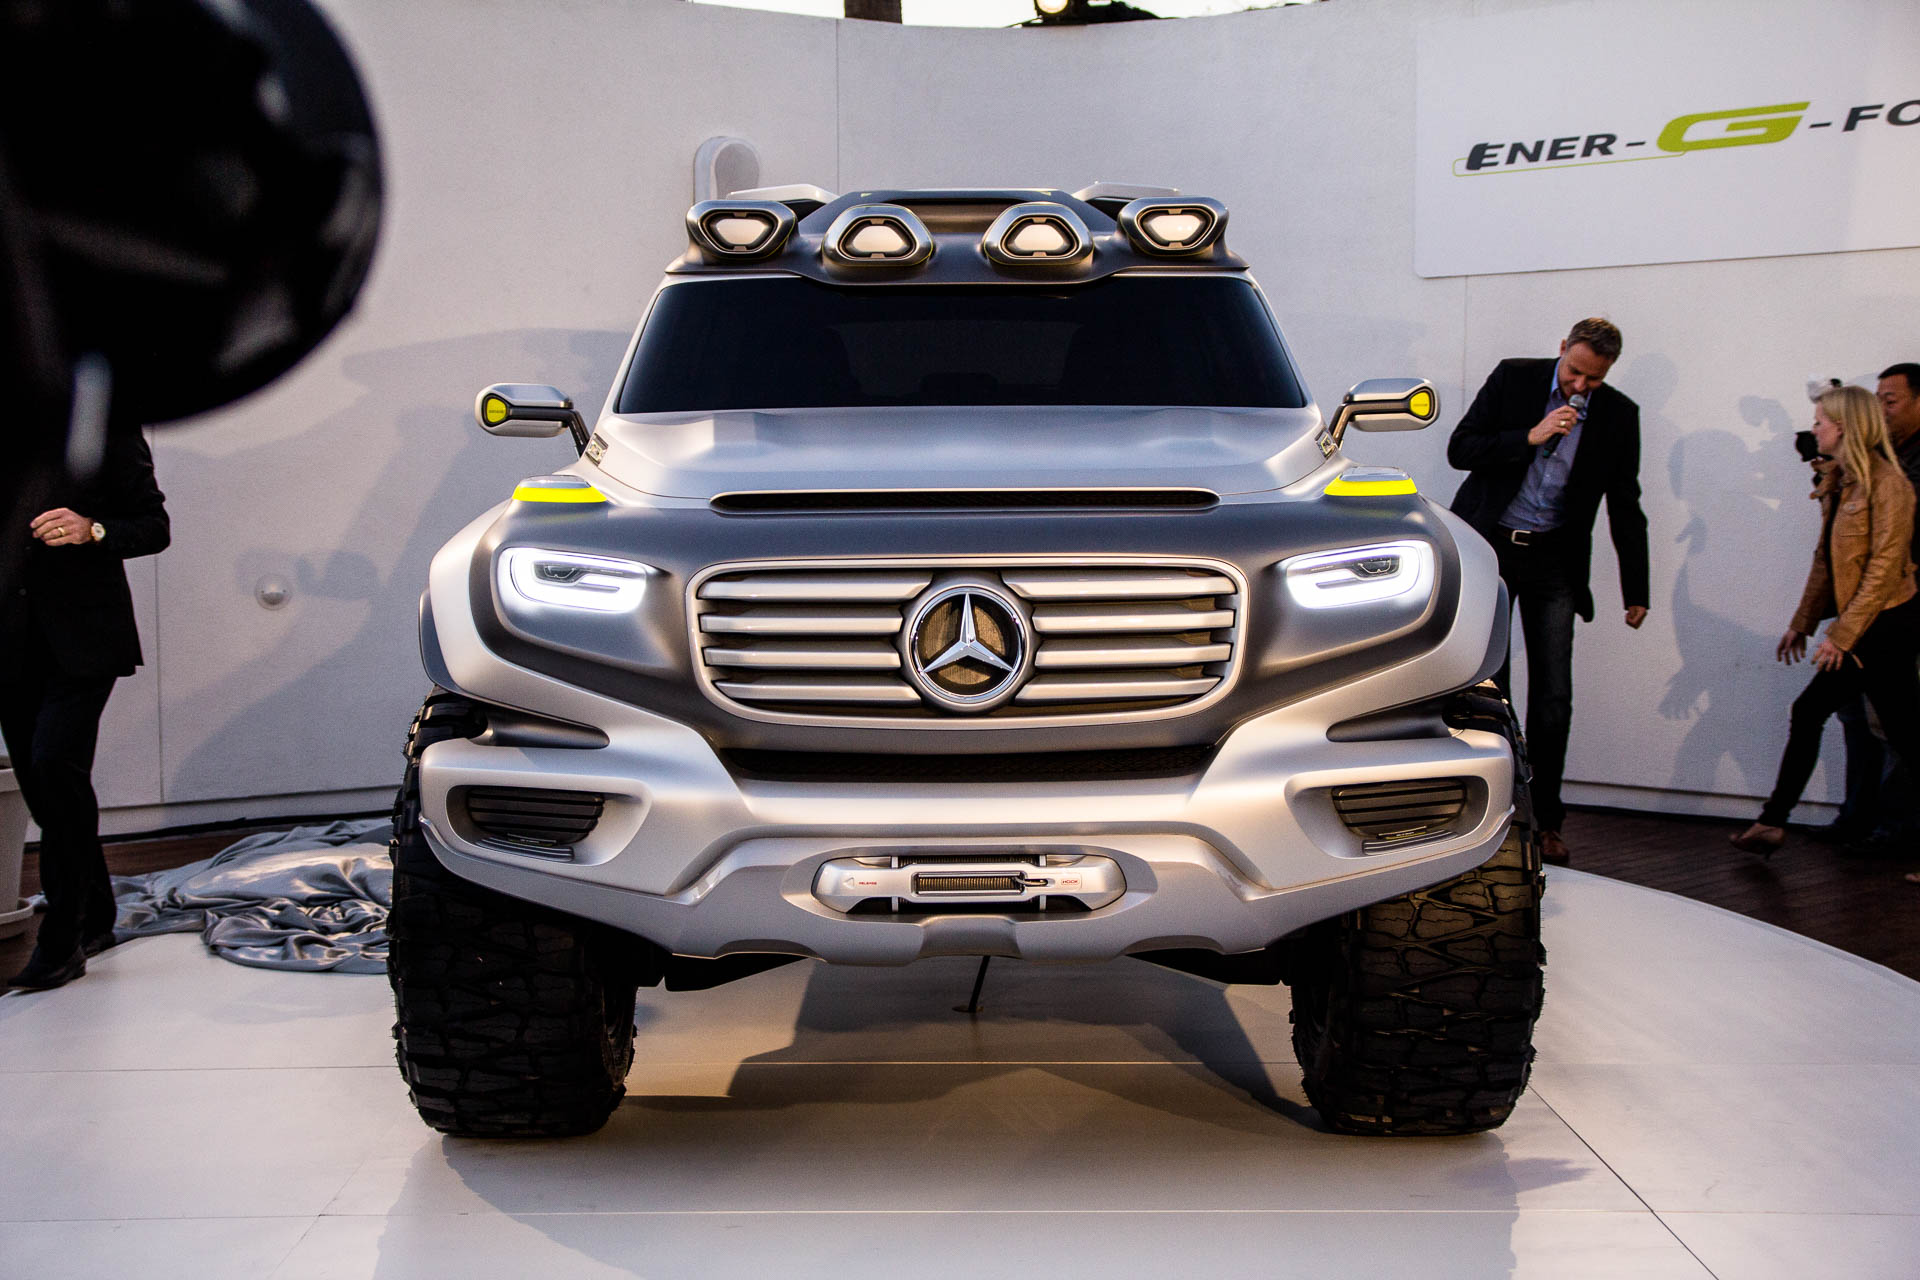 Mercedes-Benz G-Class Vision Ener-G-Force (design study)